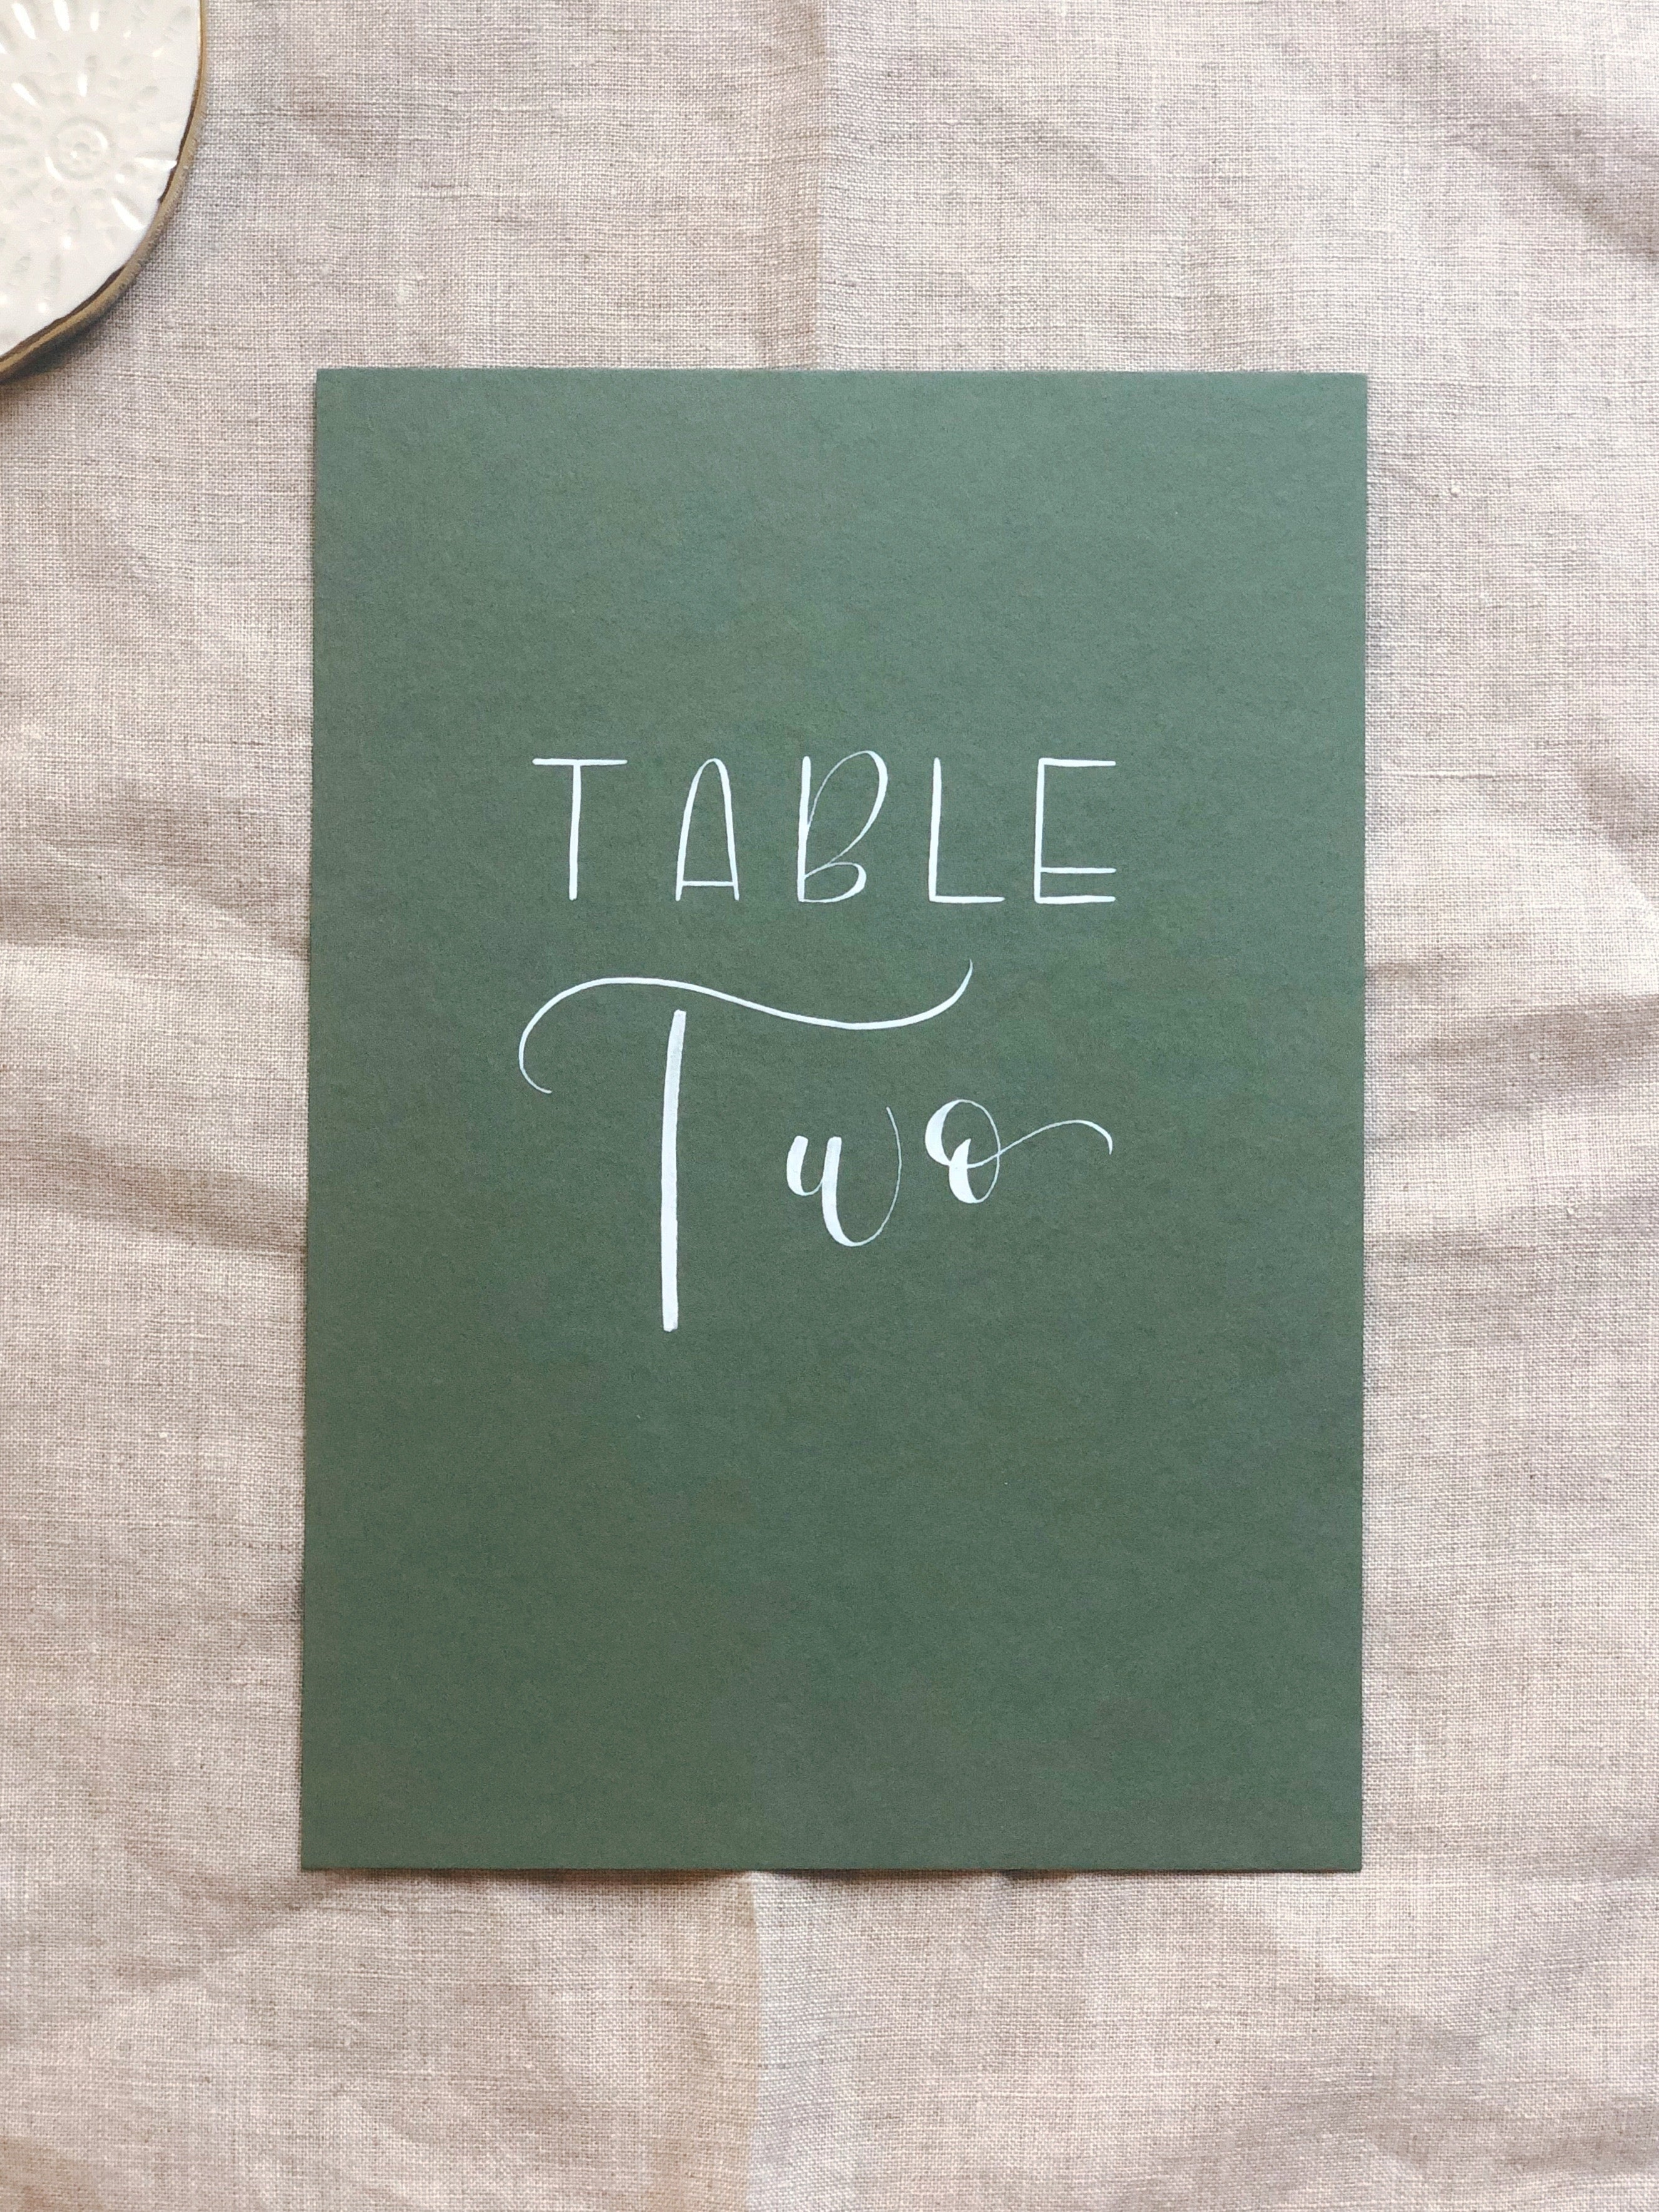 Handwritten table numbers